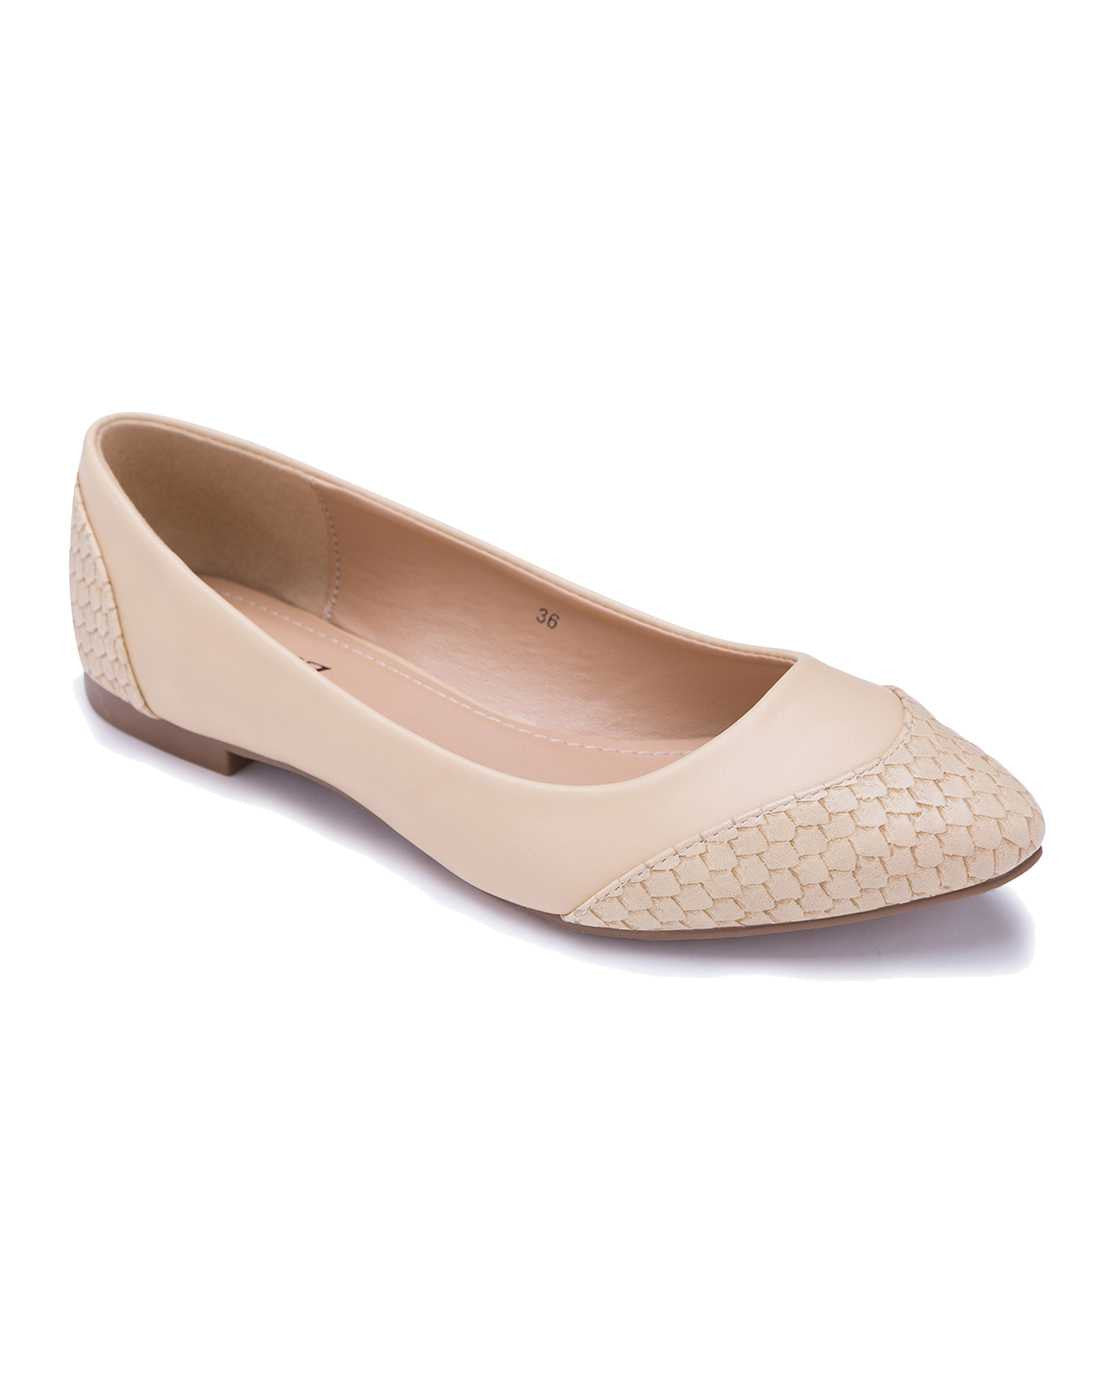 Panelled Cream Ballerinas